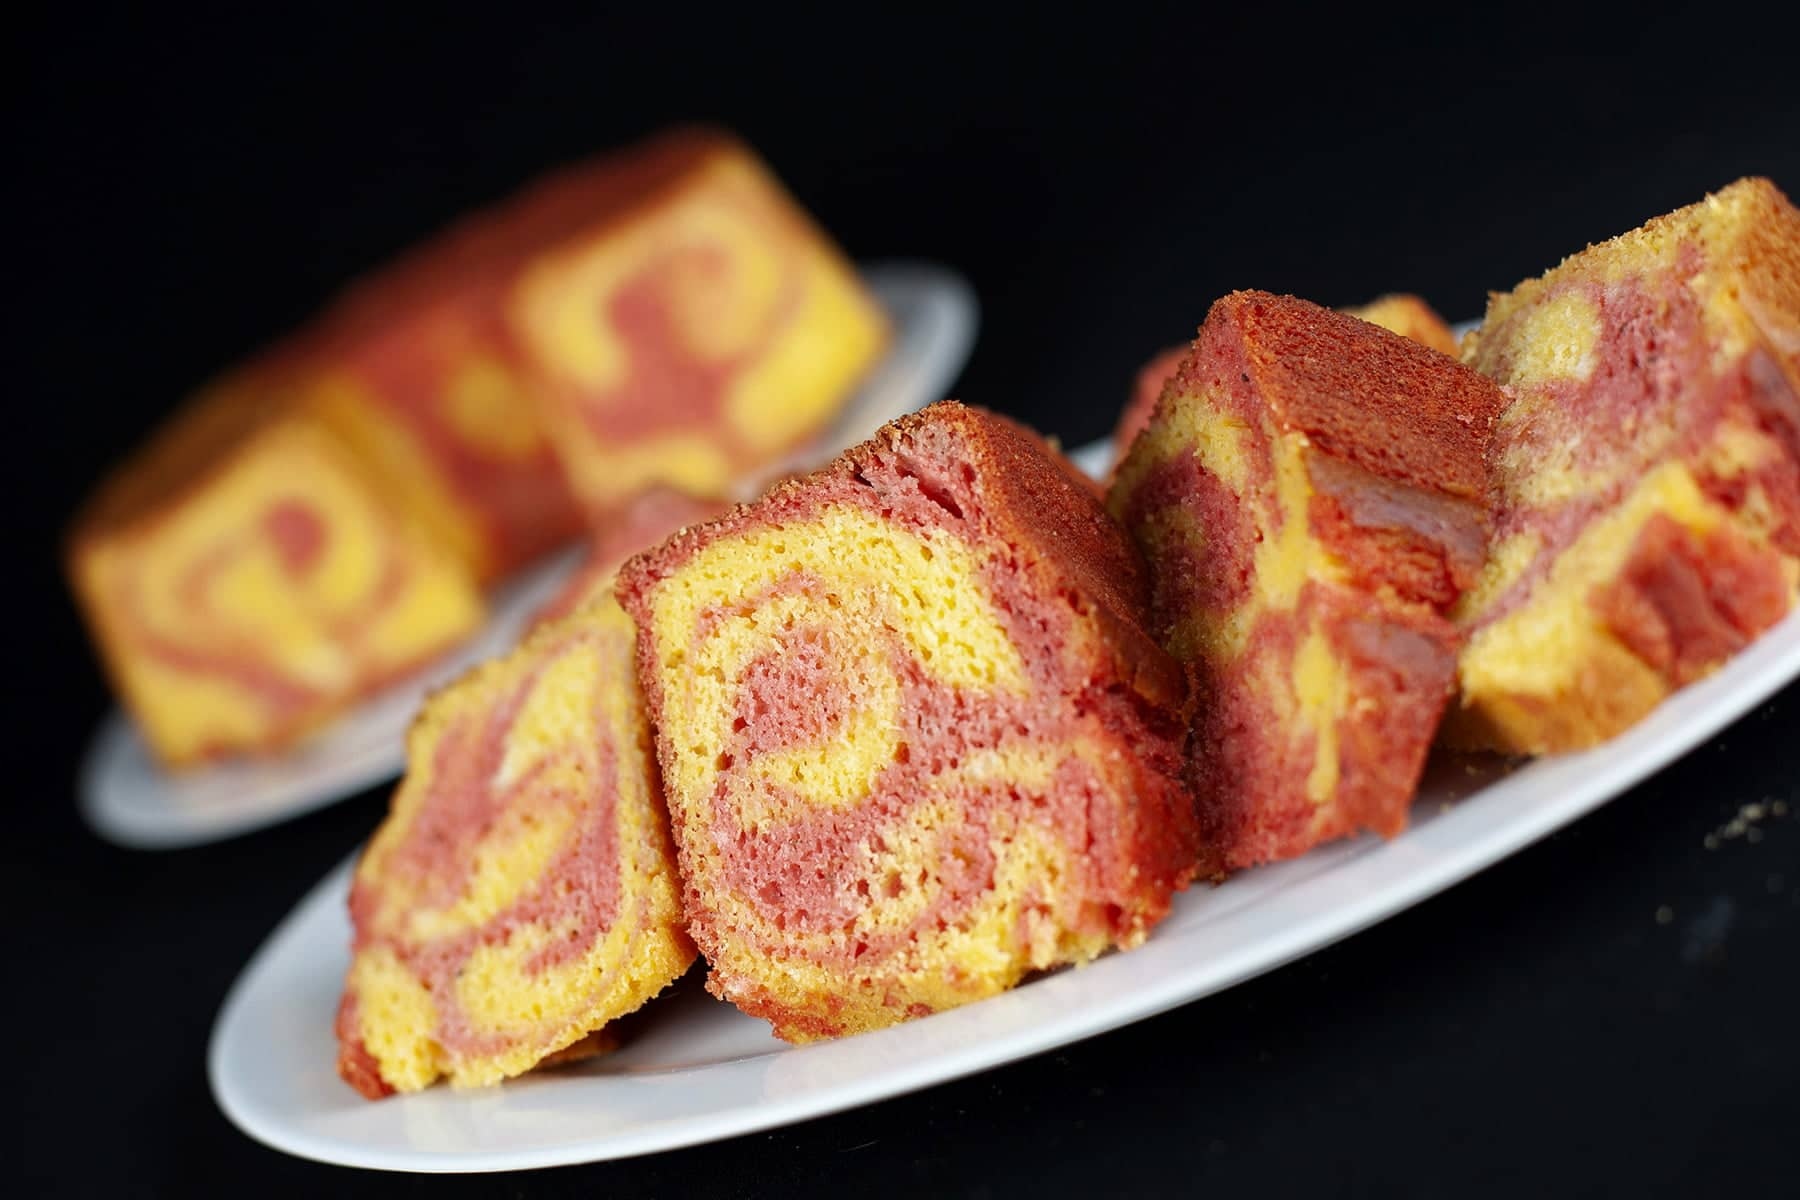 A plate of sliced strawberry mango marble cake slices rests in front of the cake it was cut from. The cake is made of brightly coloured pink and orange batters, marbled together,